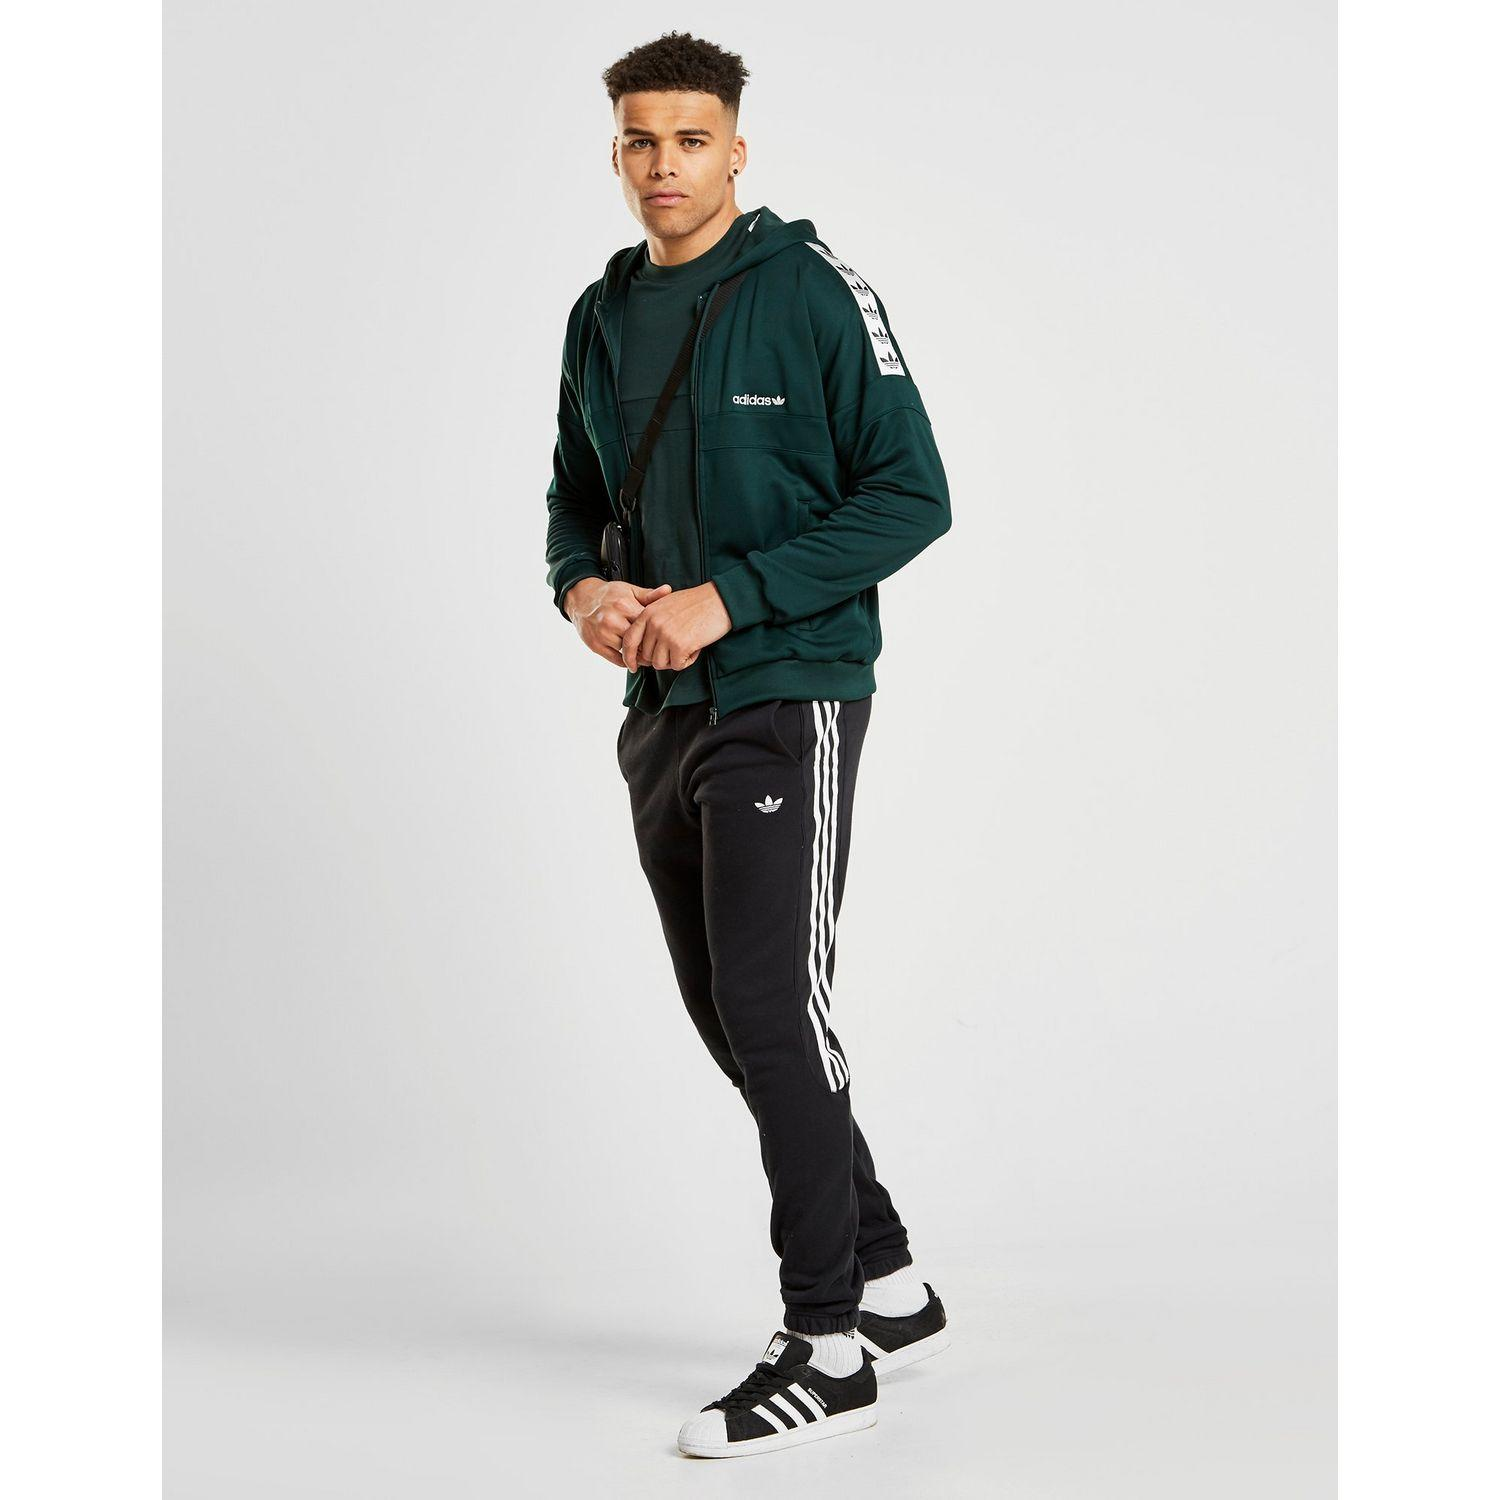 Exclusive to JD. Zip up in iconic style with this men's ID96